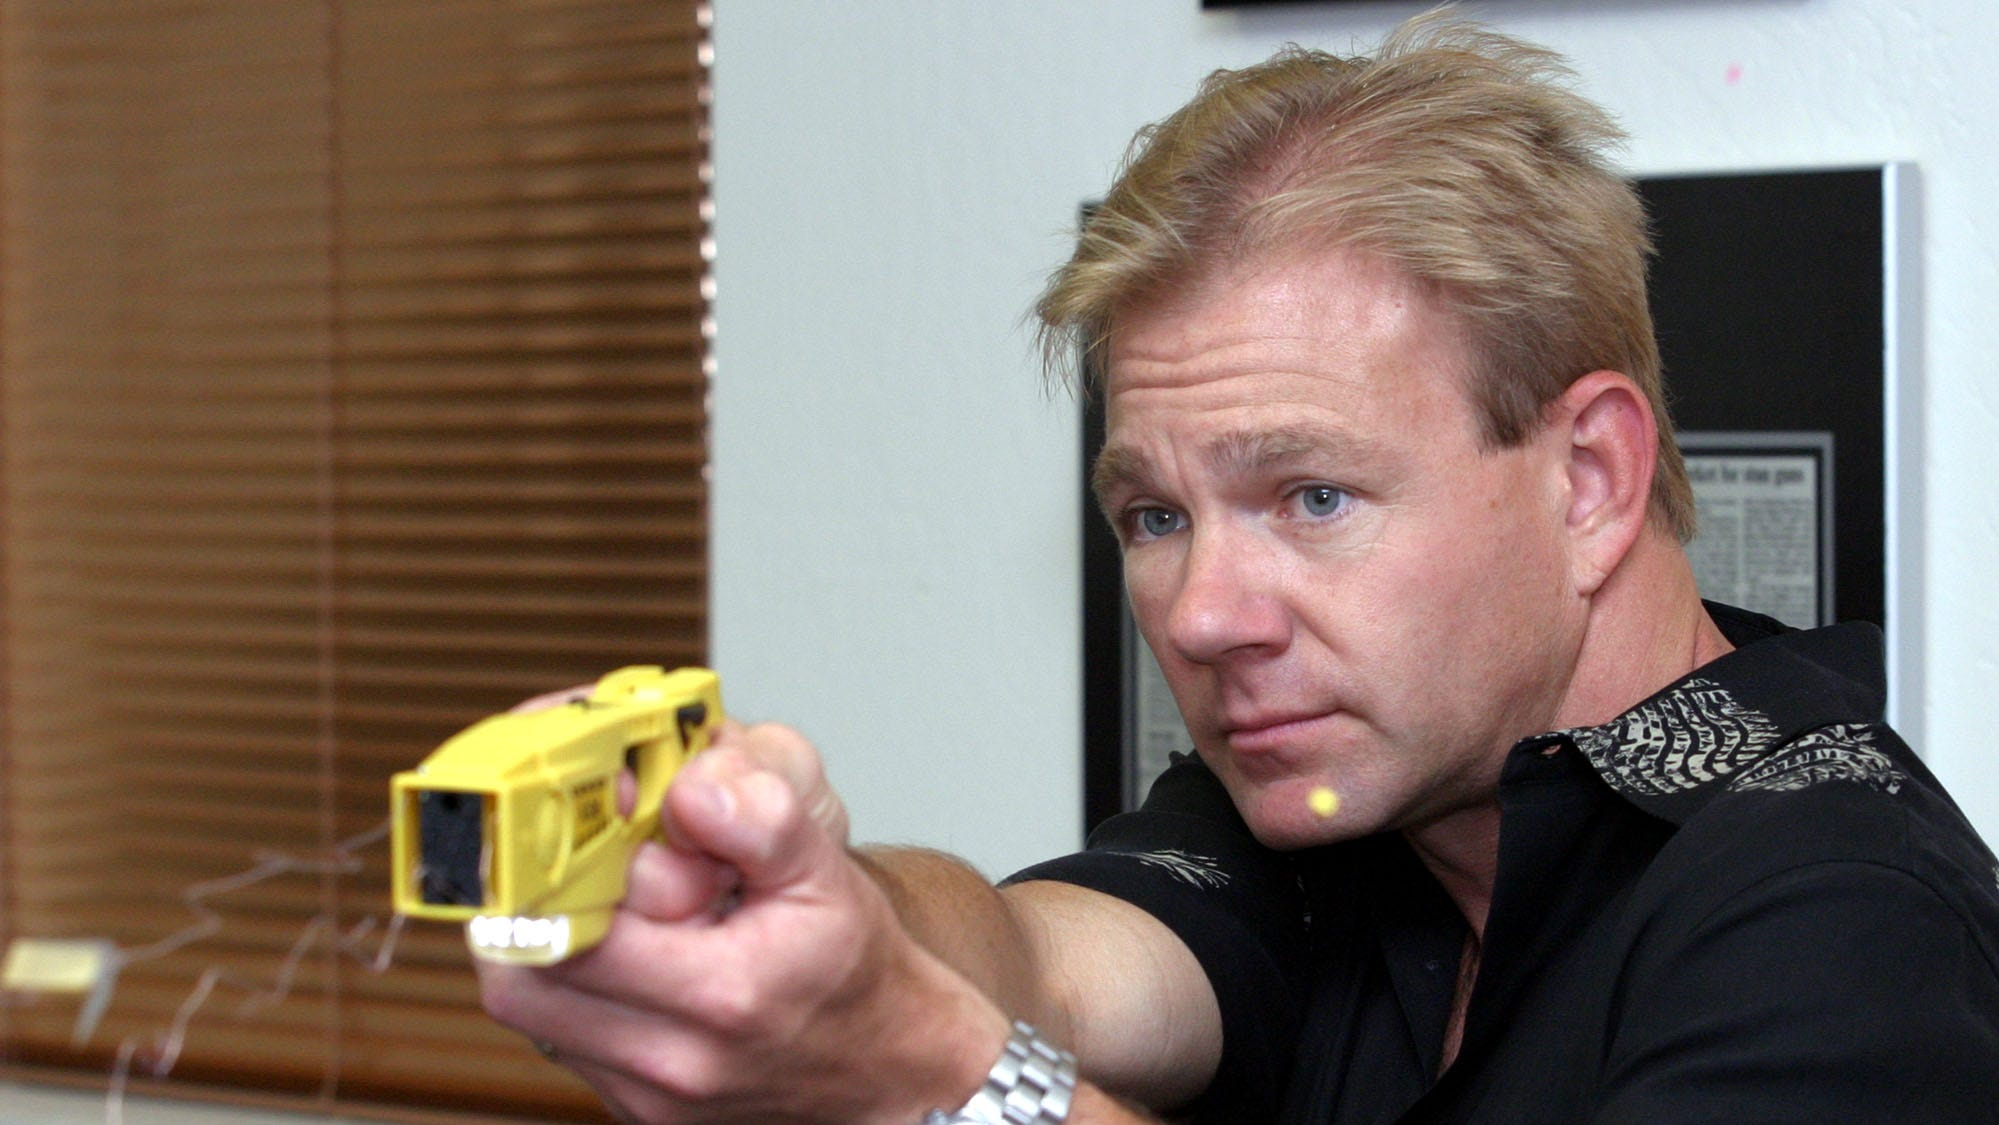 Police are looking for alternatives to guns. How effective are they?